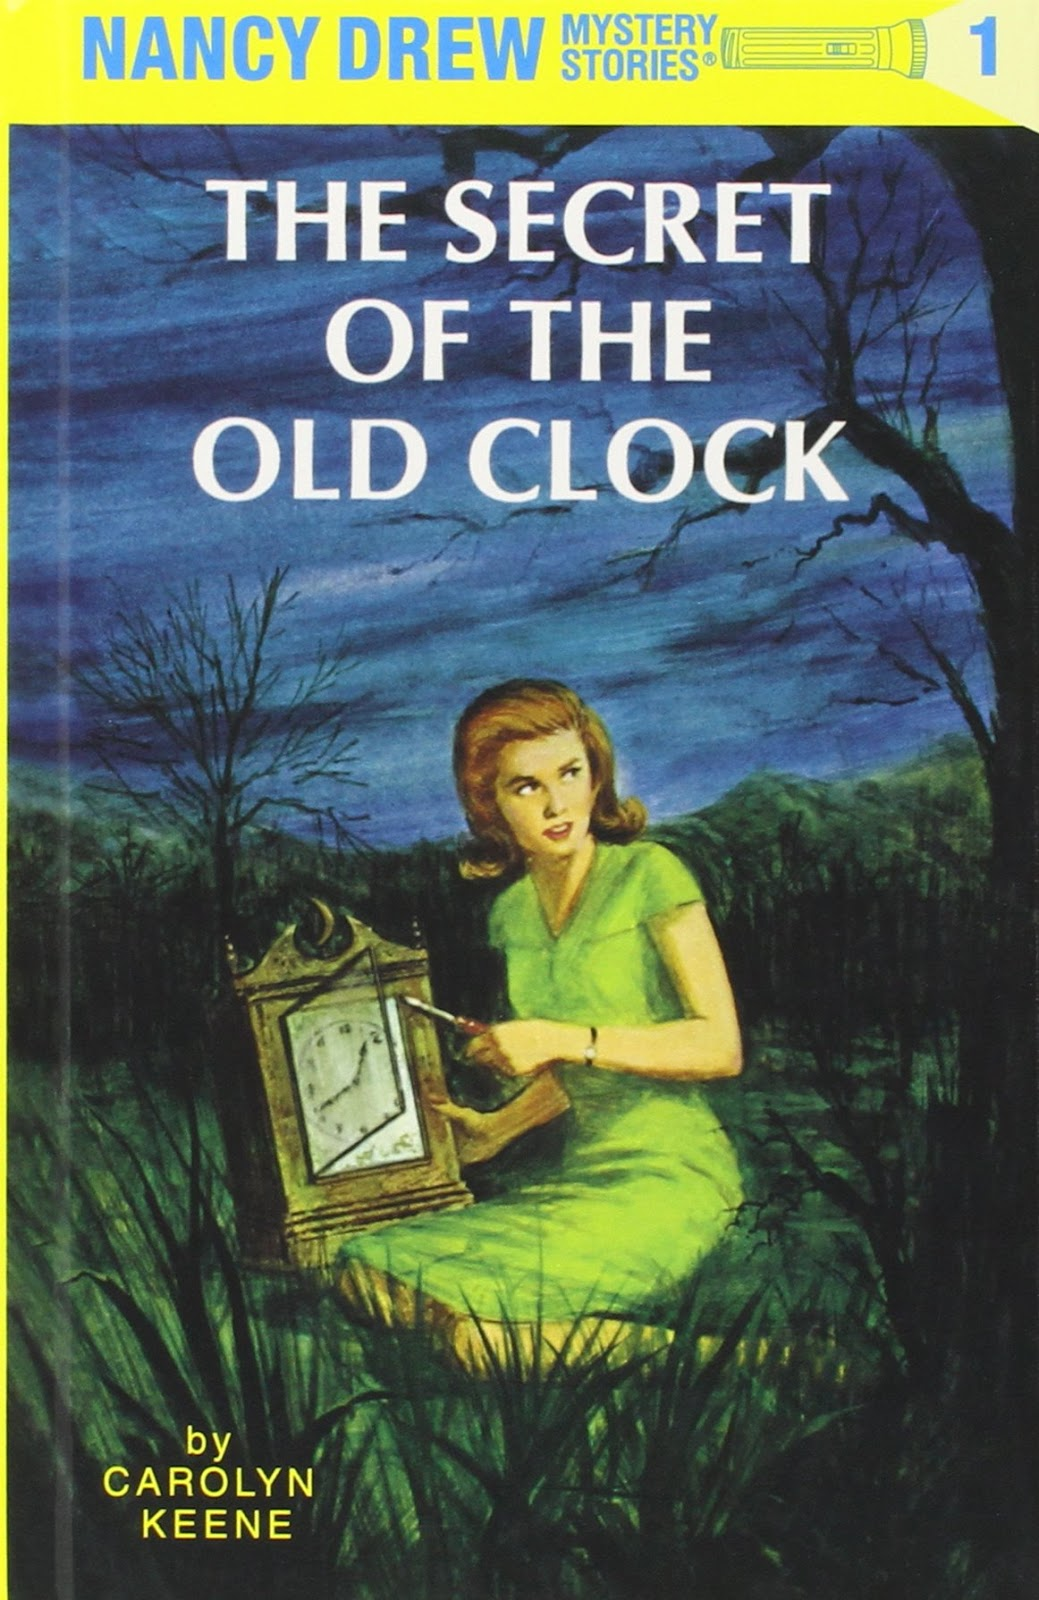 Nancy Drew Book Cover Pictures : Paukku s life annotations